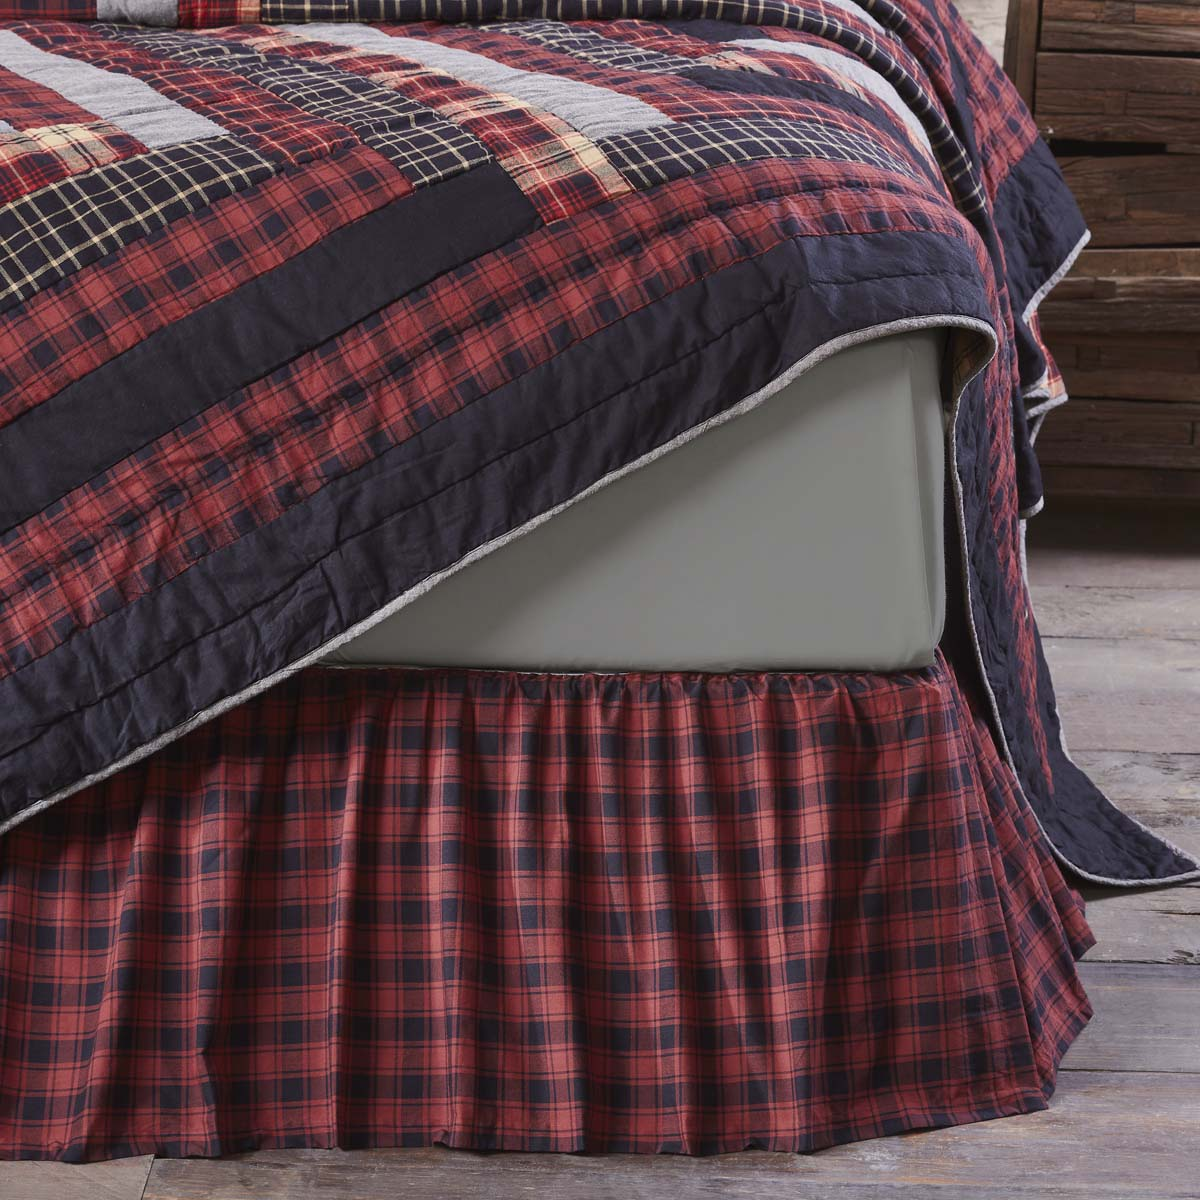 Cumberland King Bed Skirt 78x80x16 - Woodrol